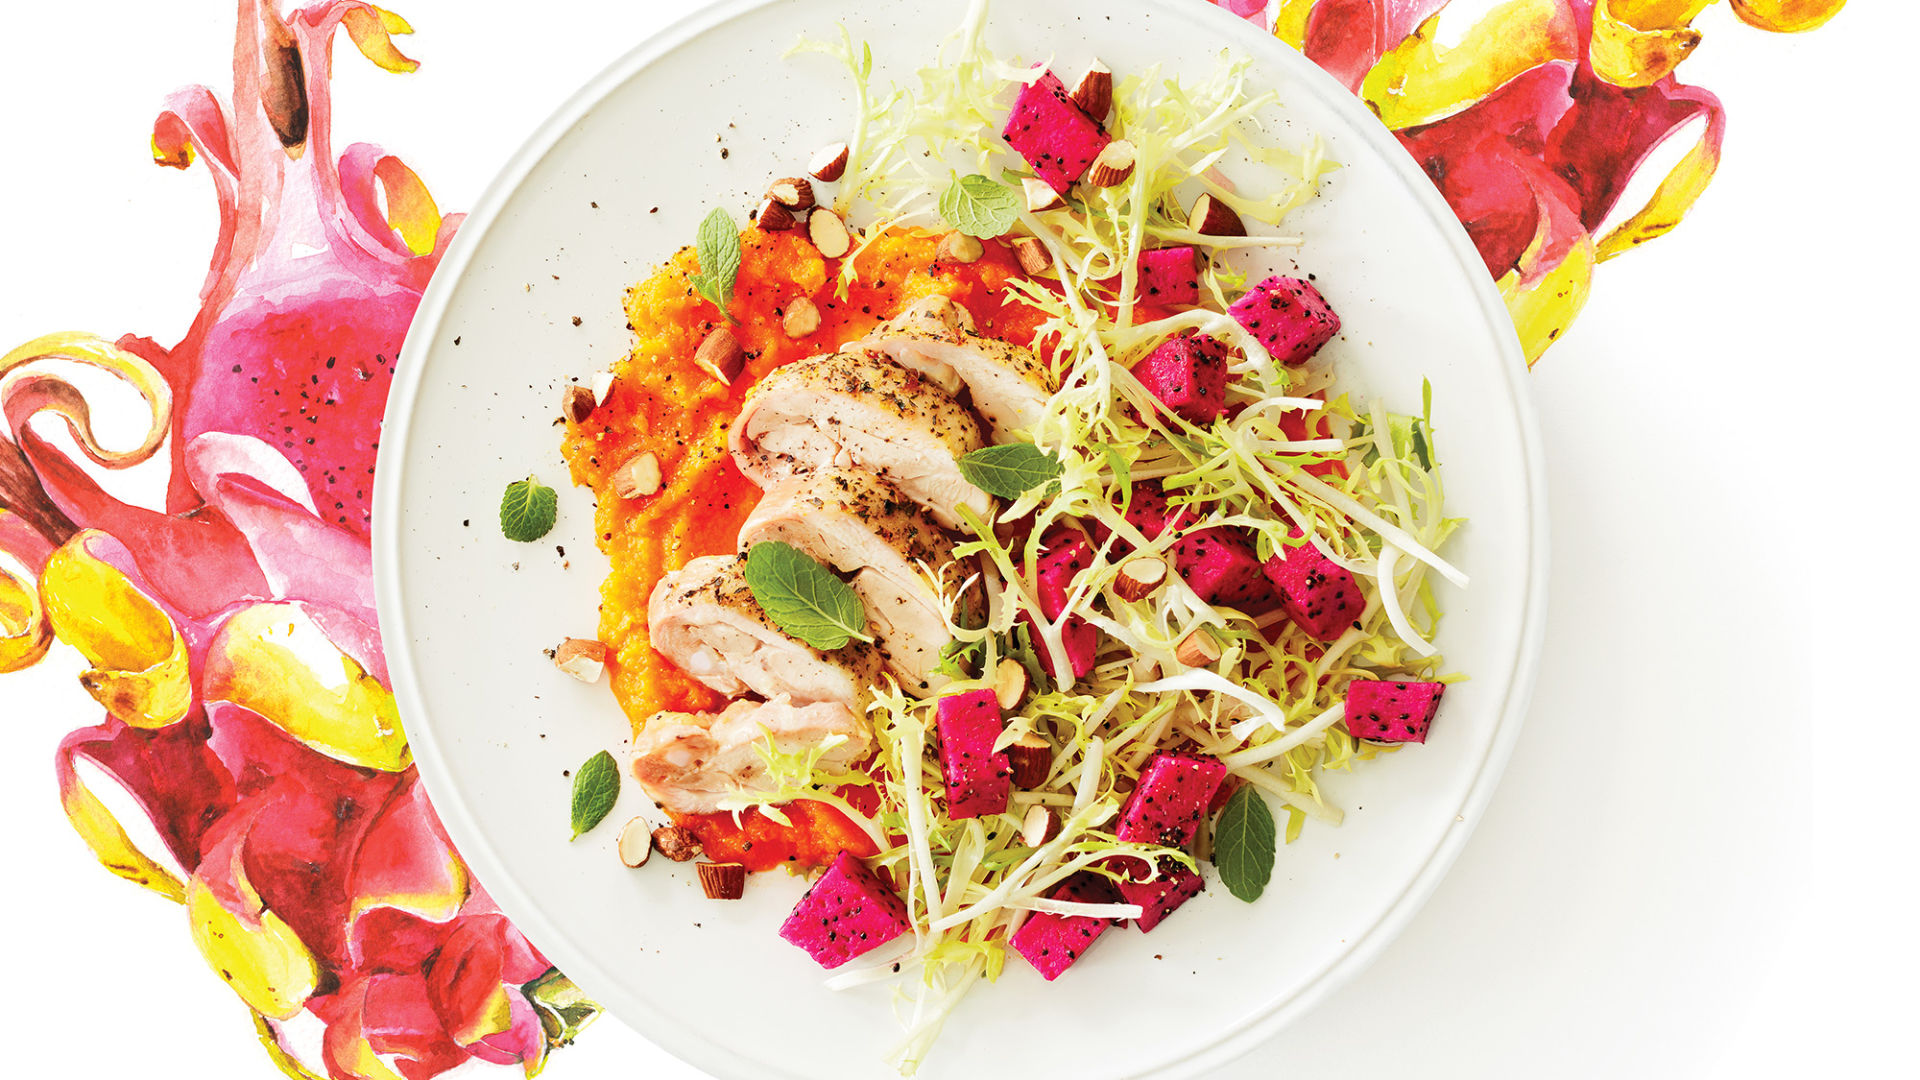 dragon-fruit-salad-with-lemony-chicken--butternut-puree-73-web